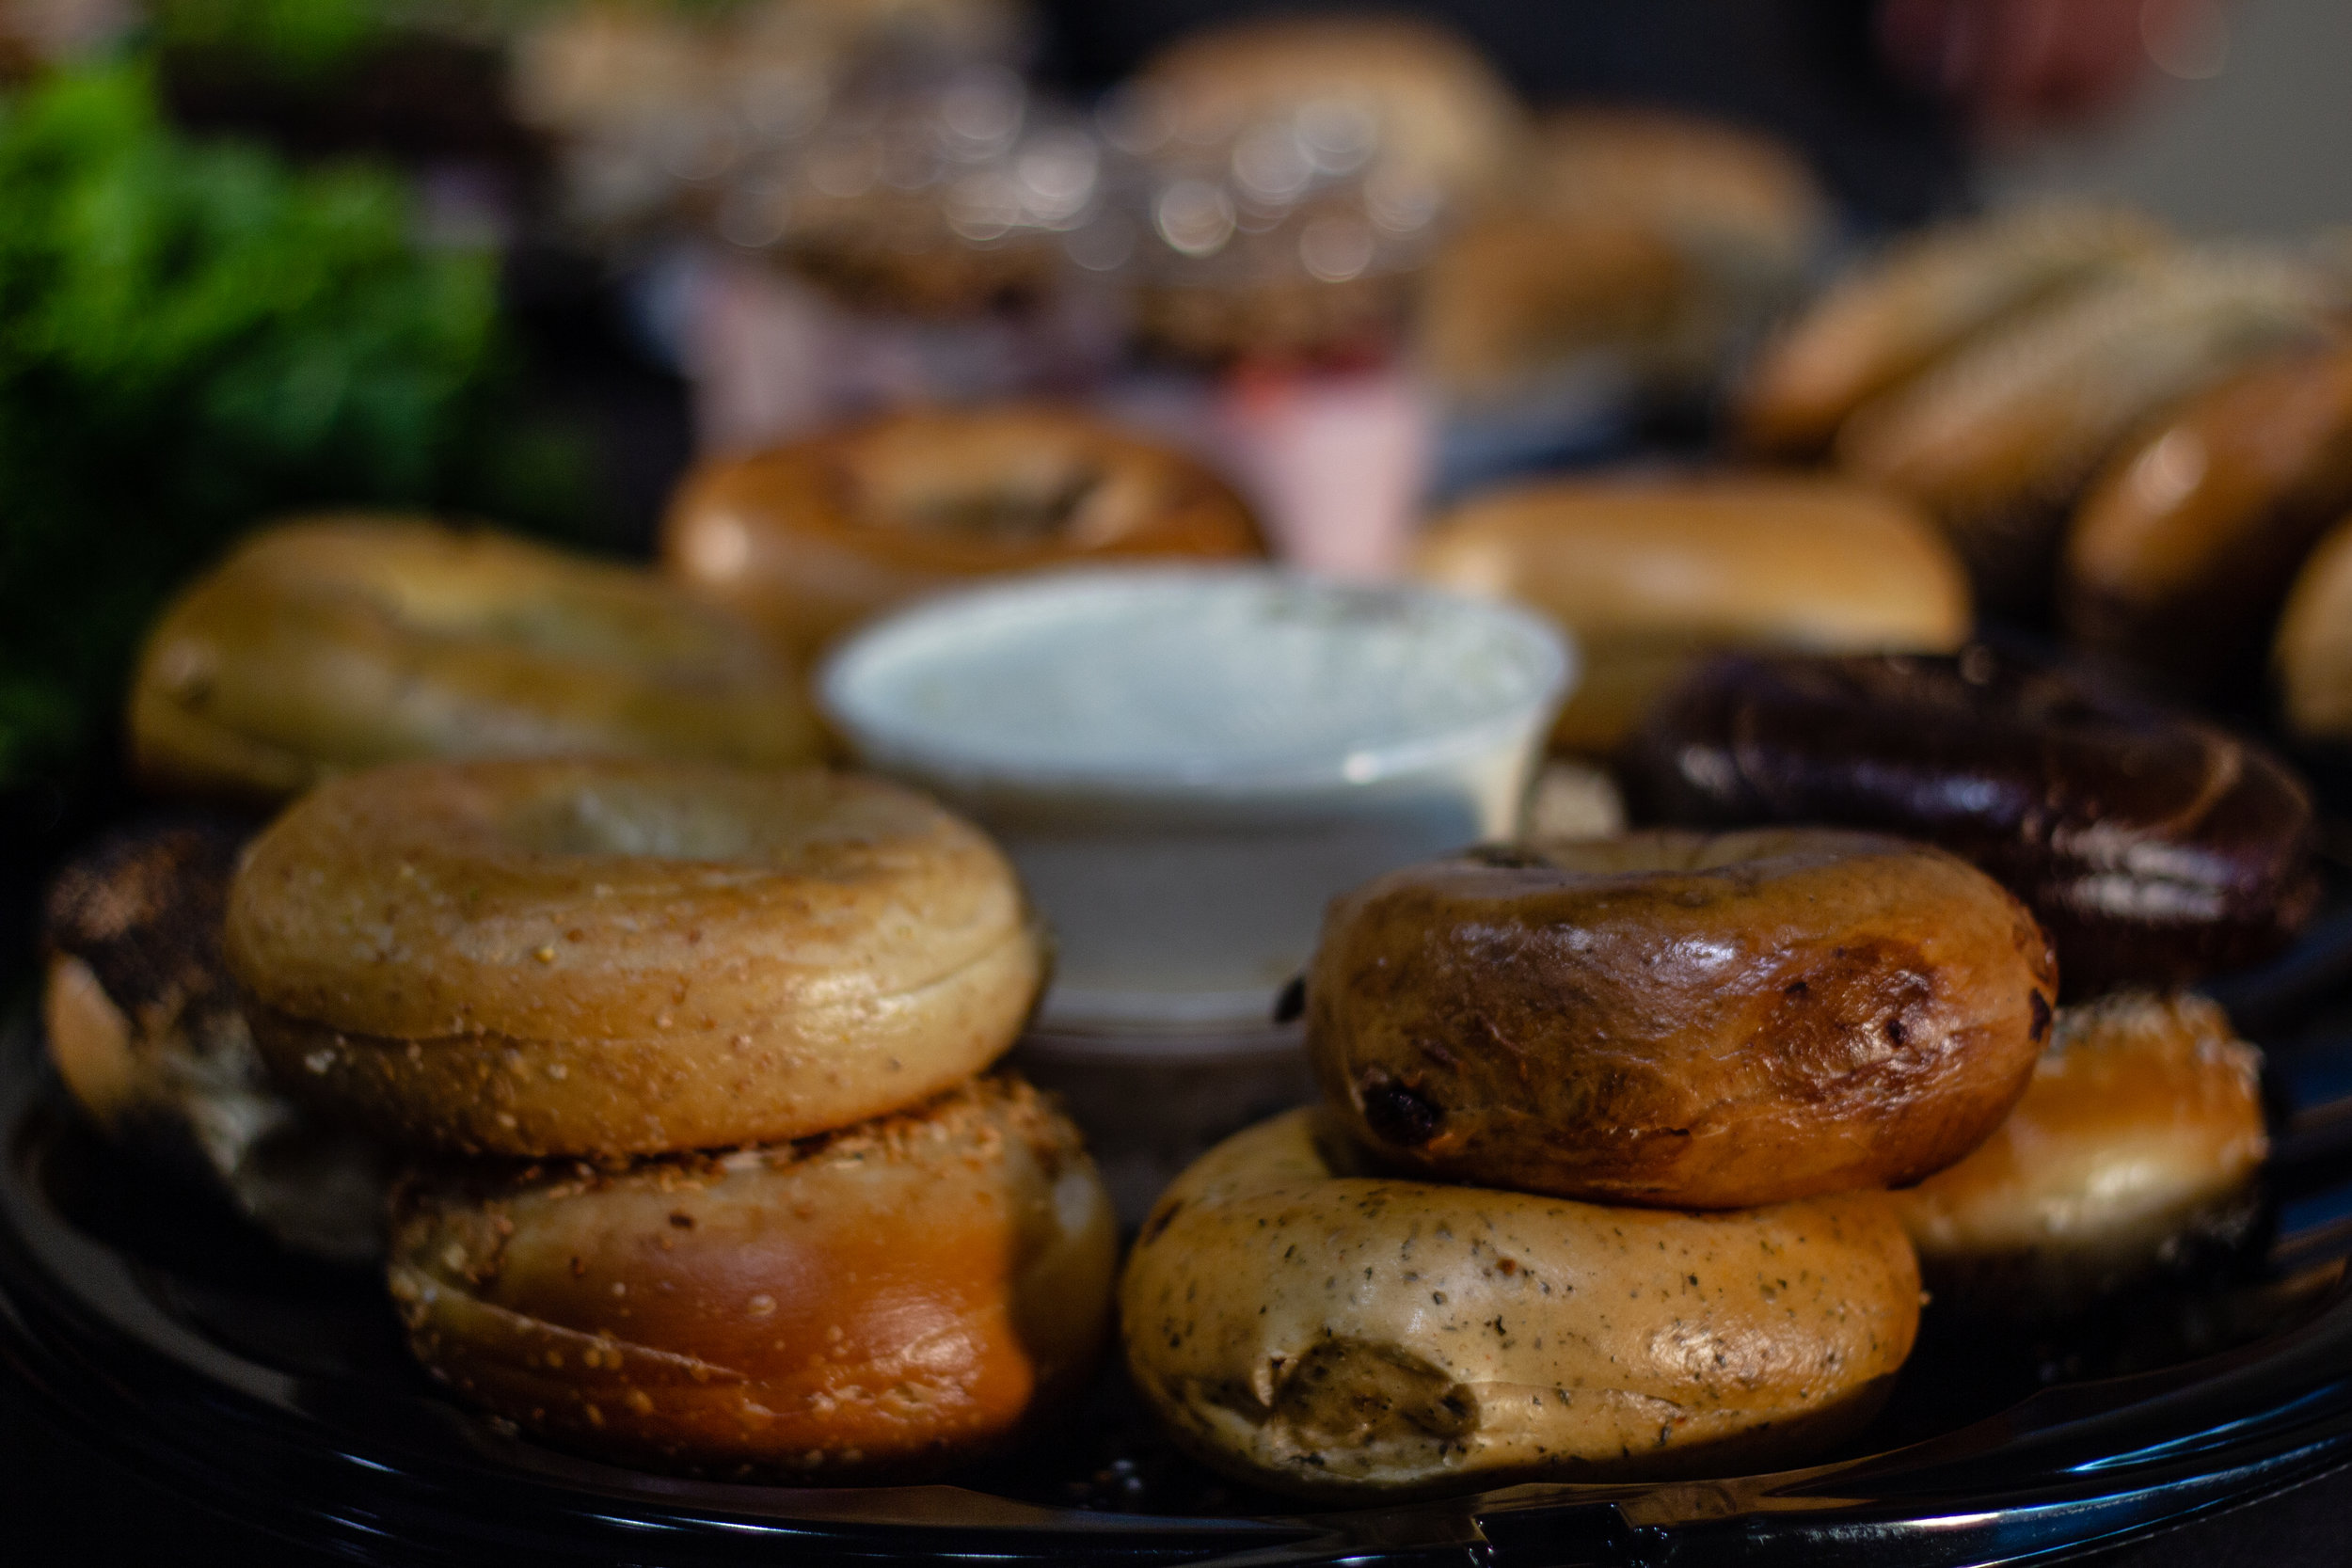 18 tasty bagel flavors to choose from and tons of cream cheese options!